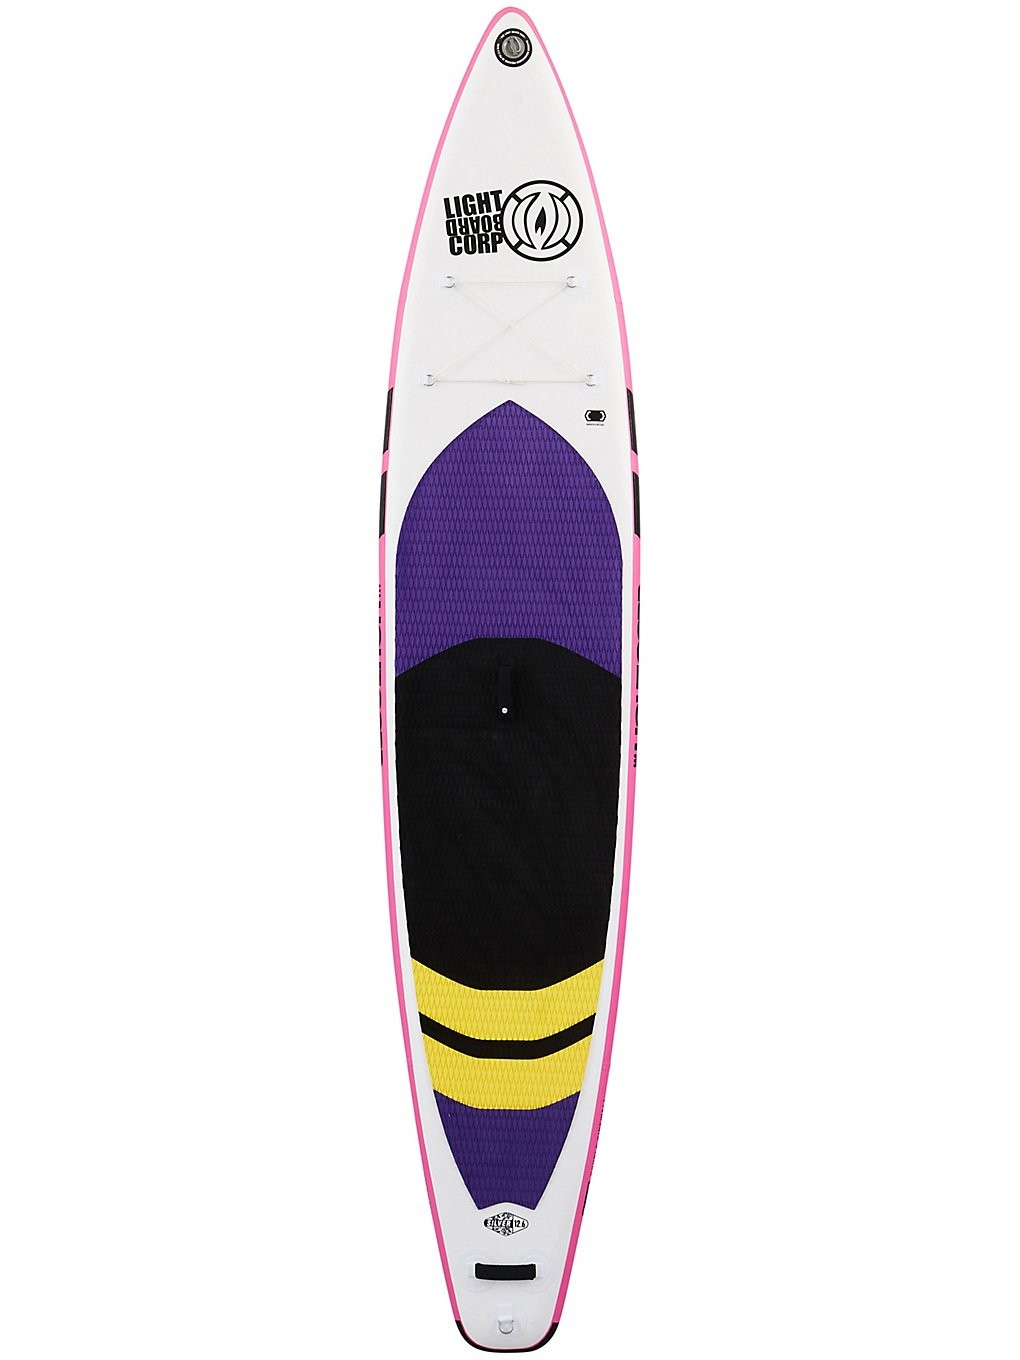 Light Inflatable Tourer 11'6 SUP Board silver